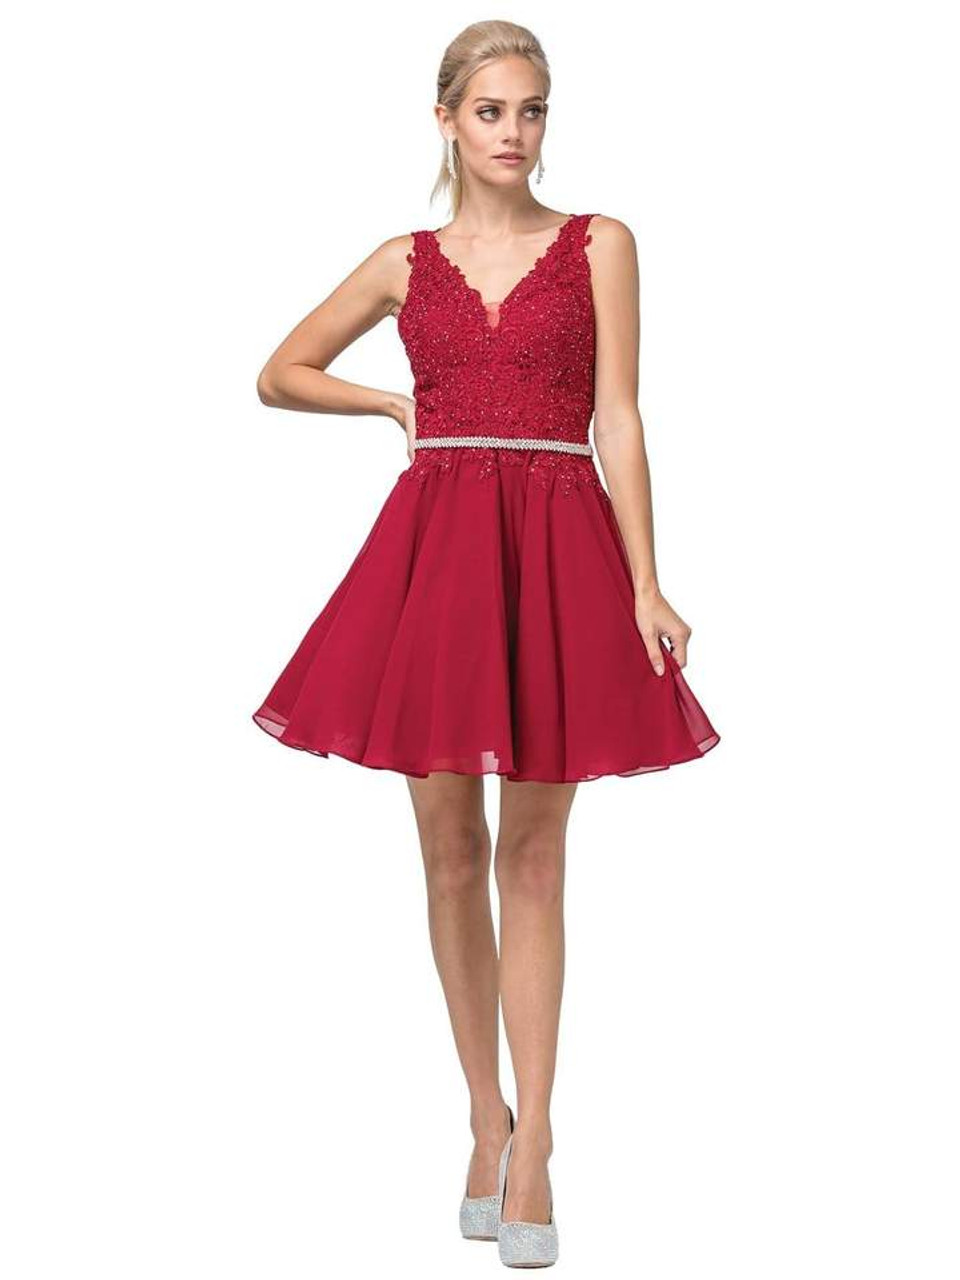 Dancing Queen 3011 Plunging V-neck Lace Bodice Short Dress